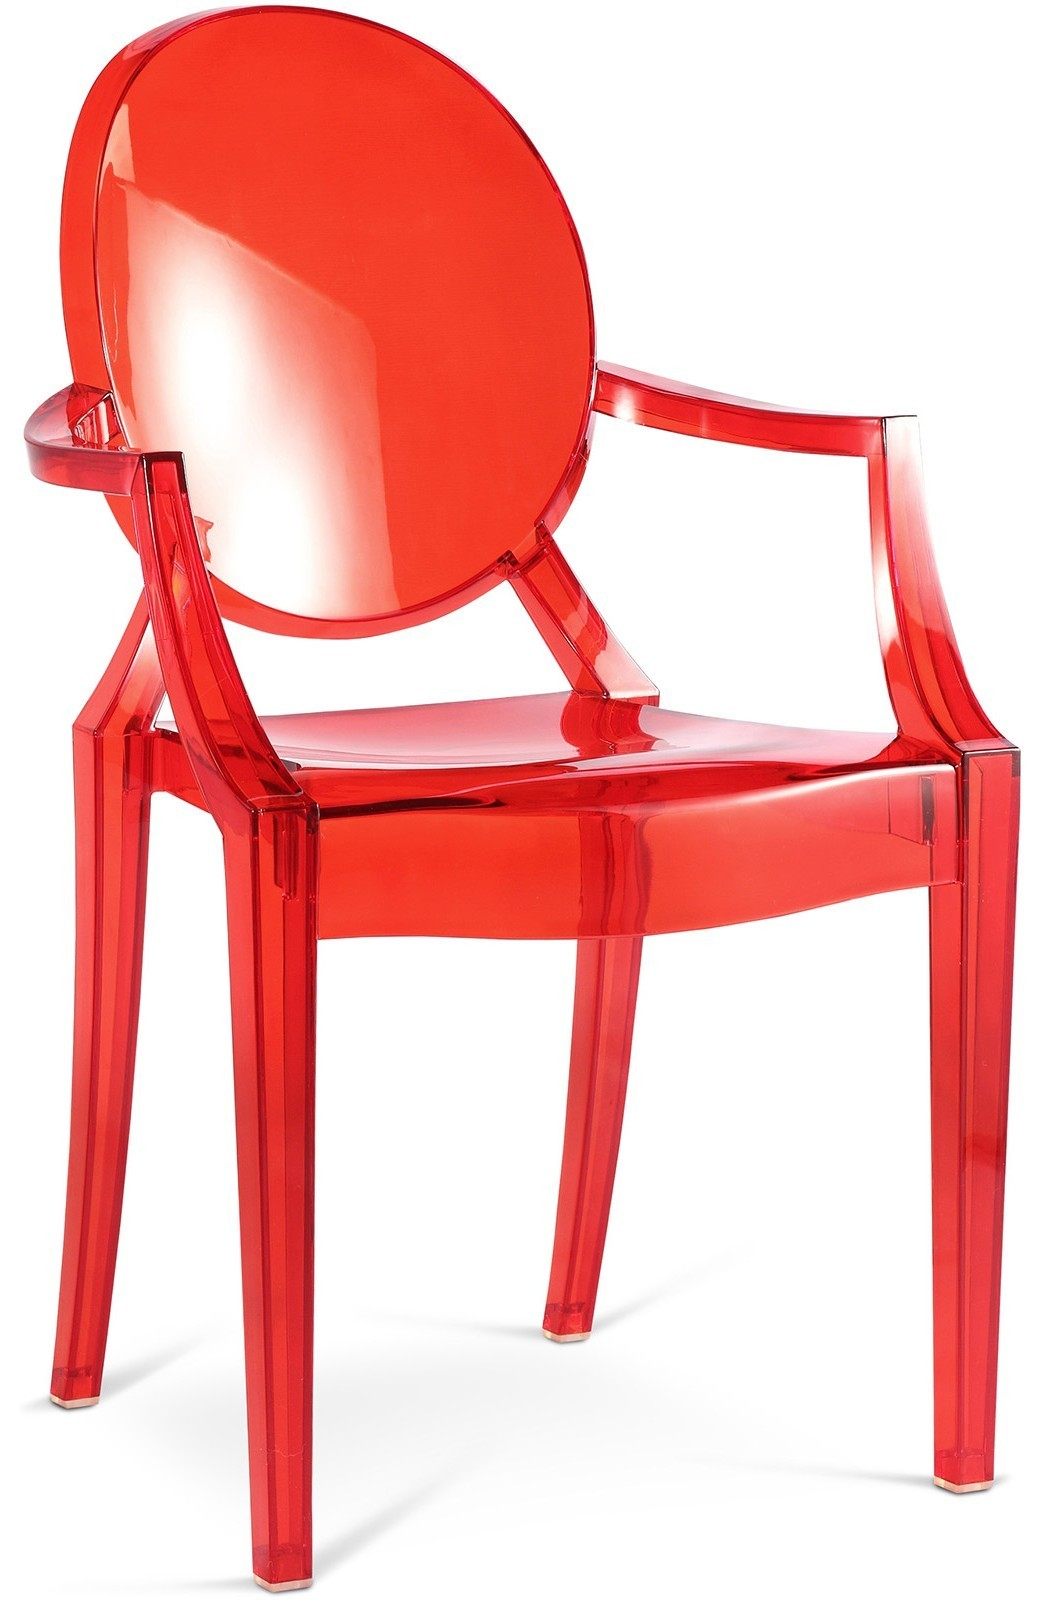 Chaises En Polycarbonate Chaise Polycarbonate Transparent Rouge Inspiré Louis Ghost Lot De 2